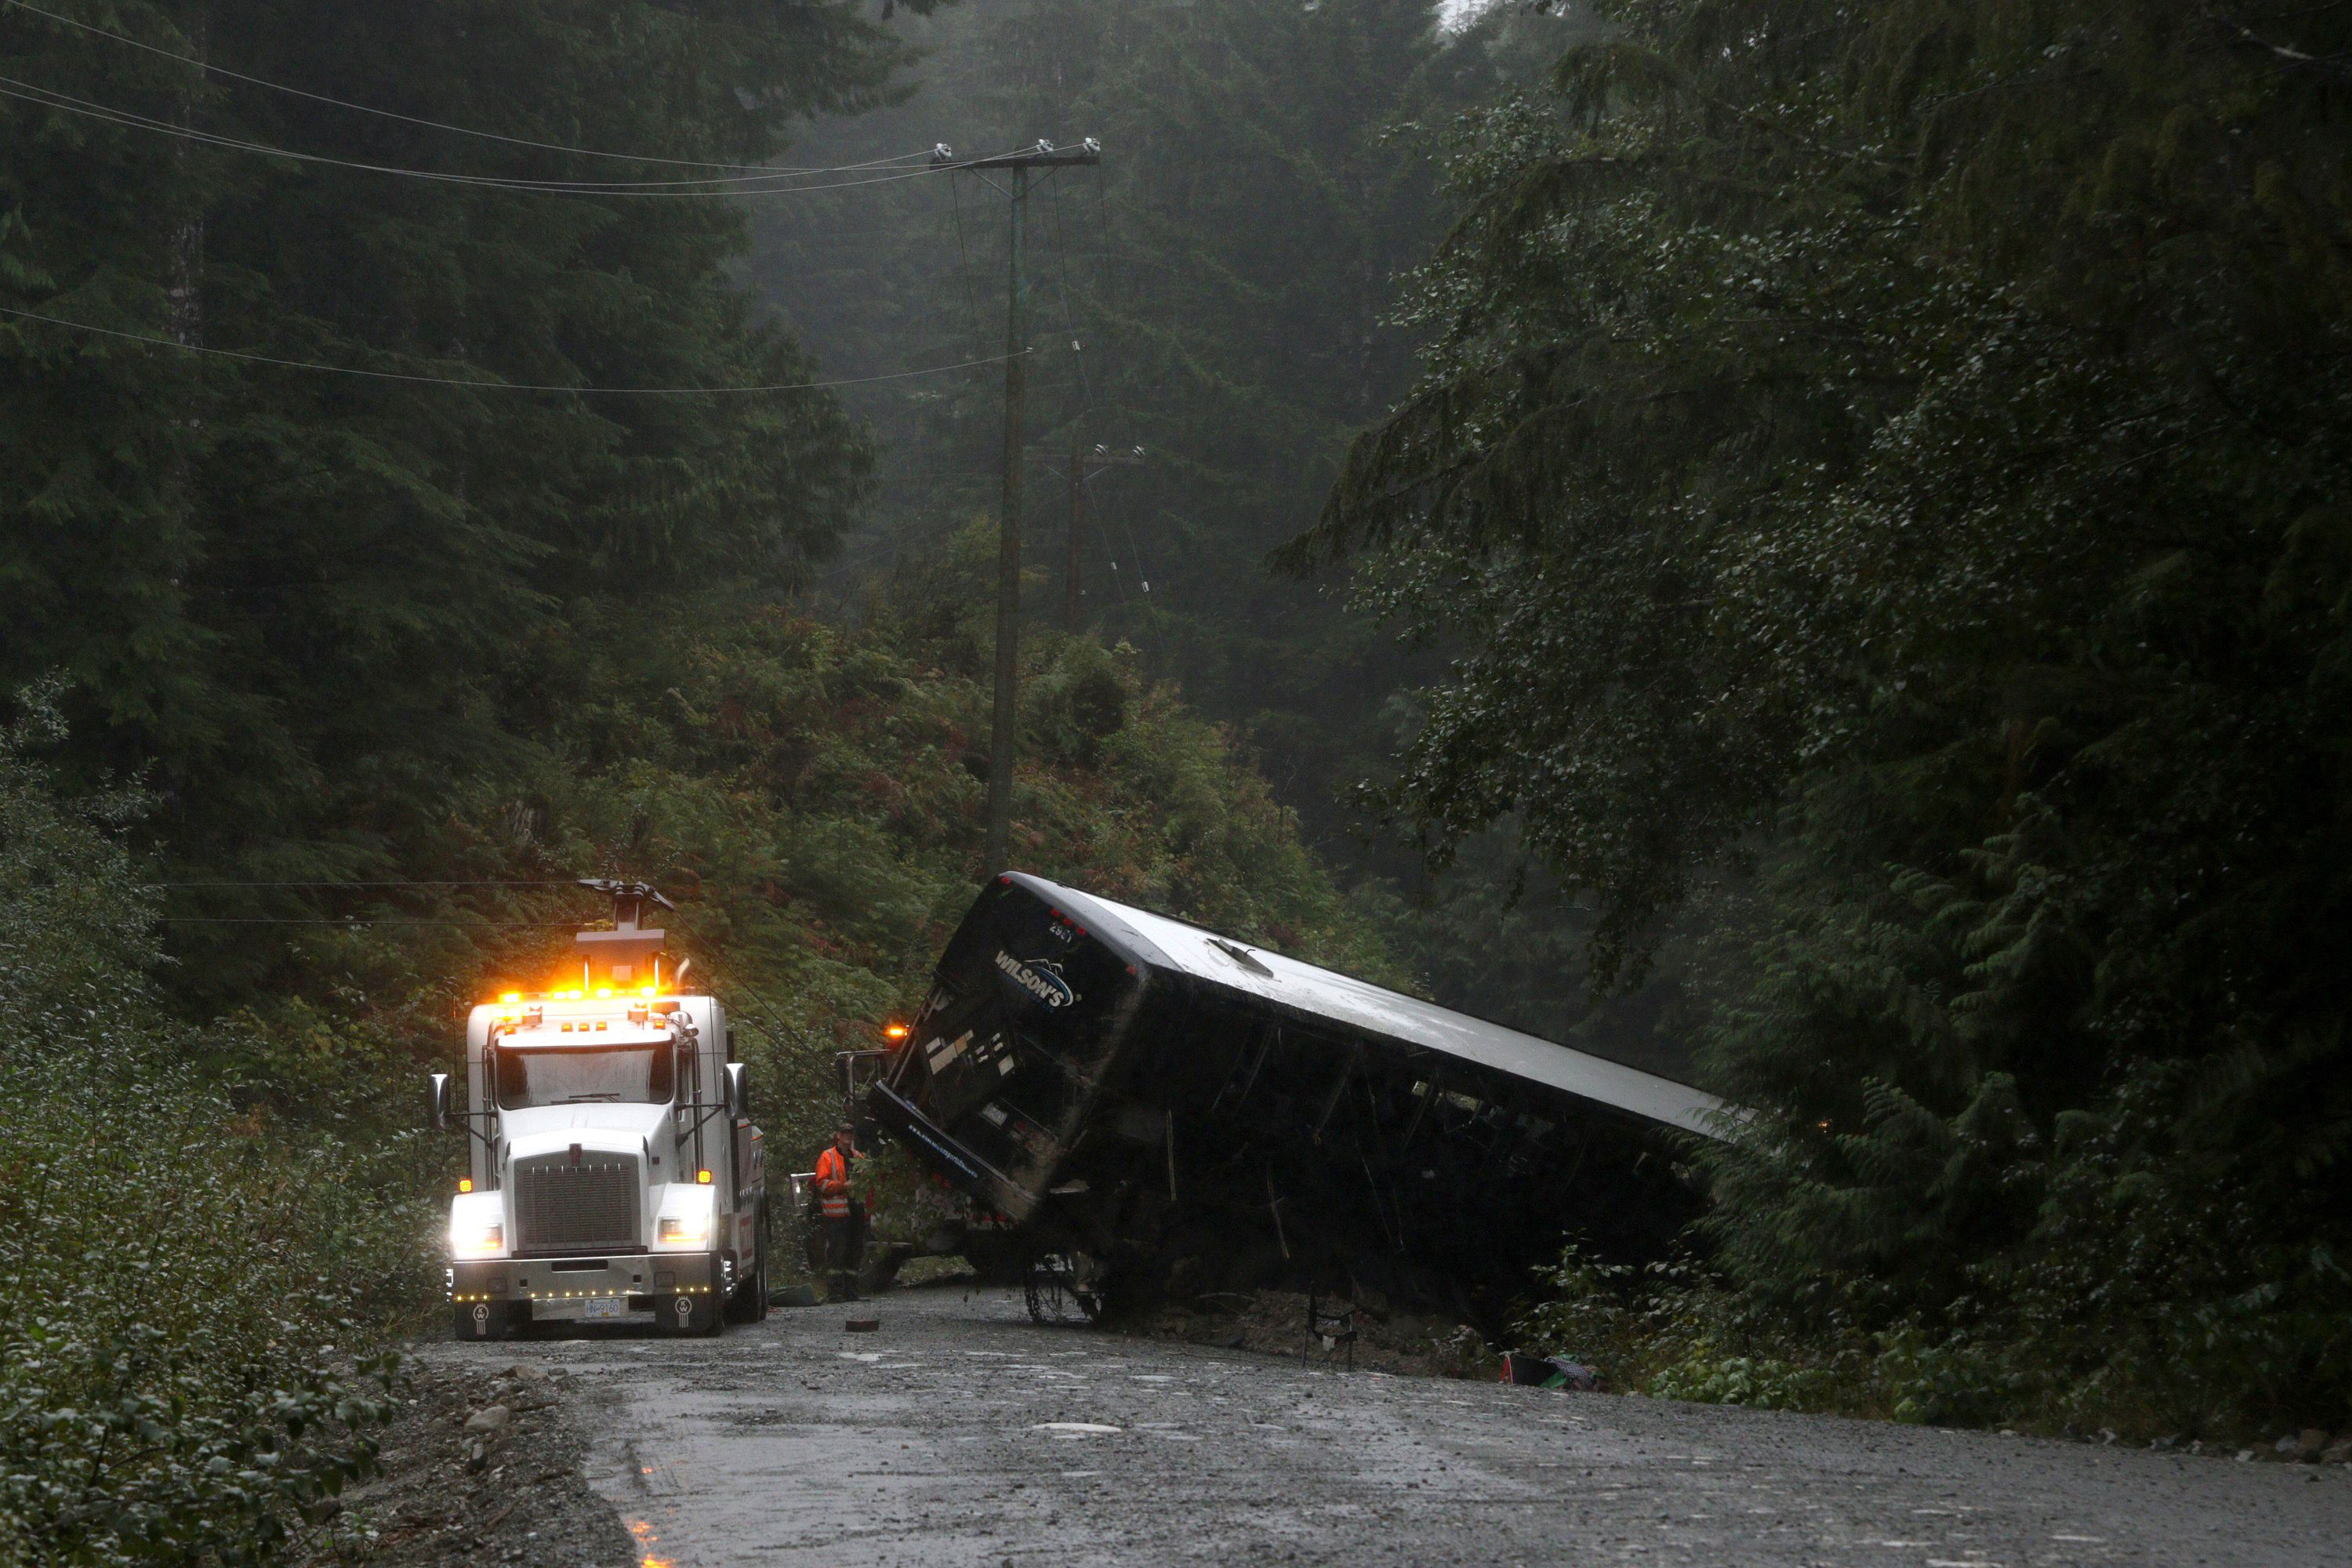 Future field trip transport will be guided by bus crash review: University of Victoria